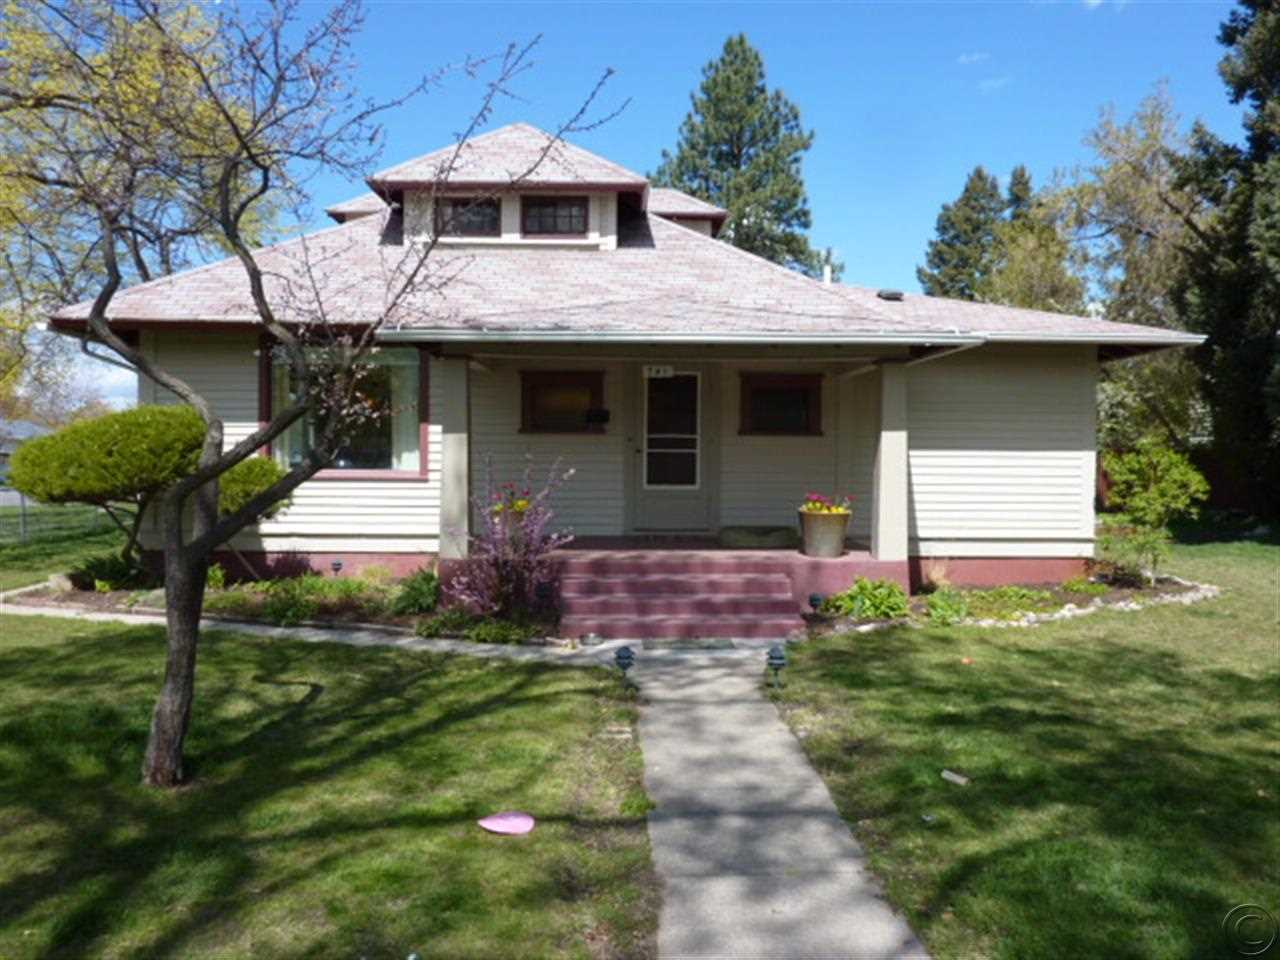 741 Woodford St, Missoula, MT 59801